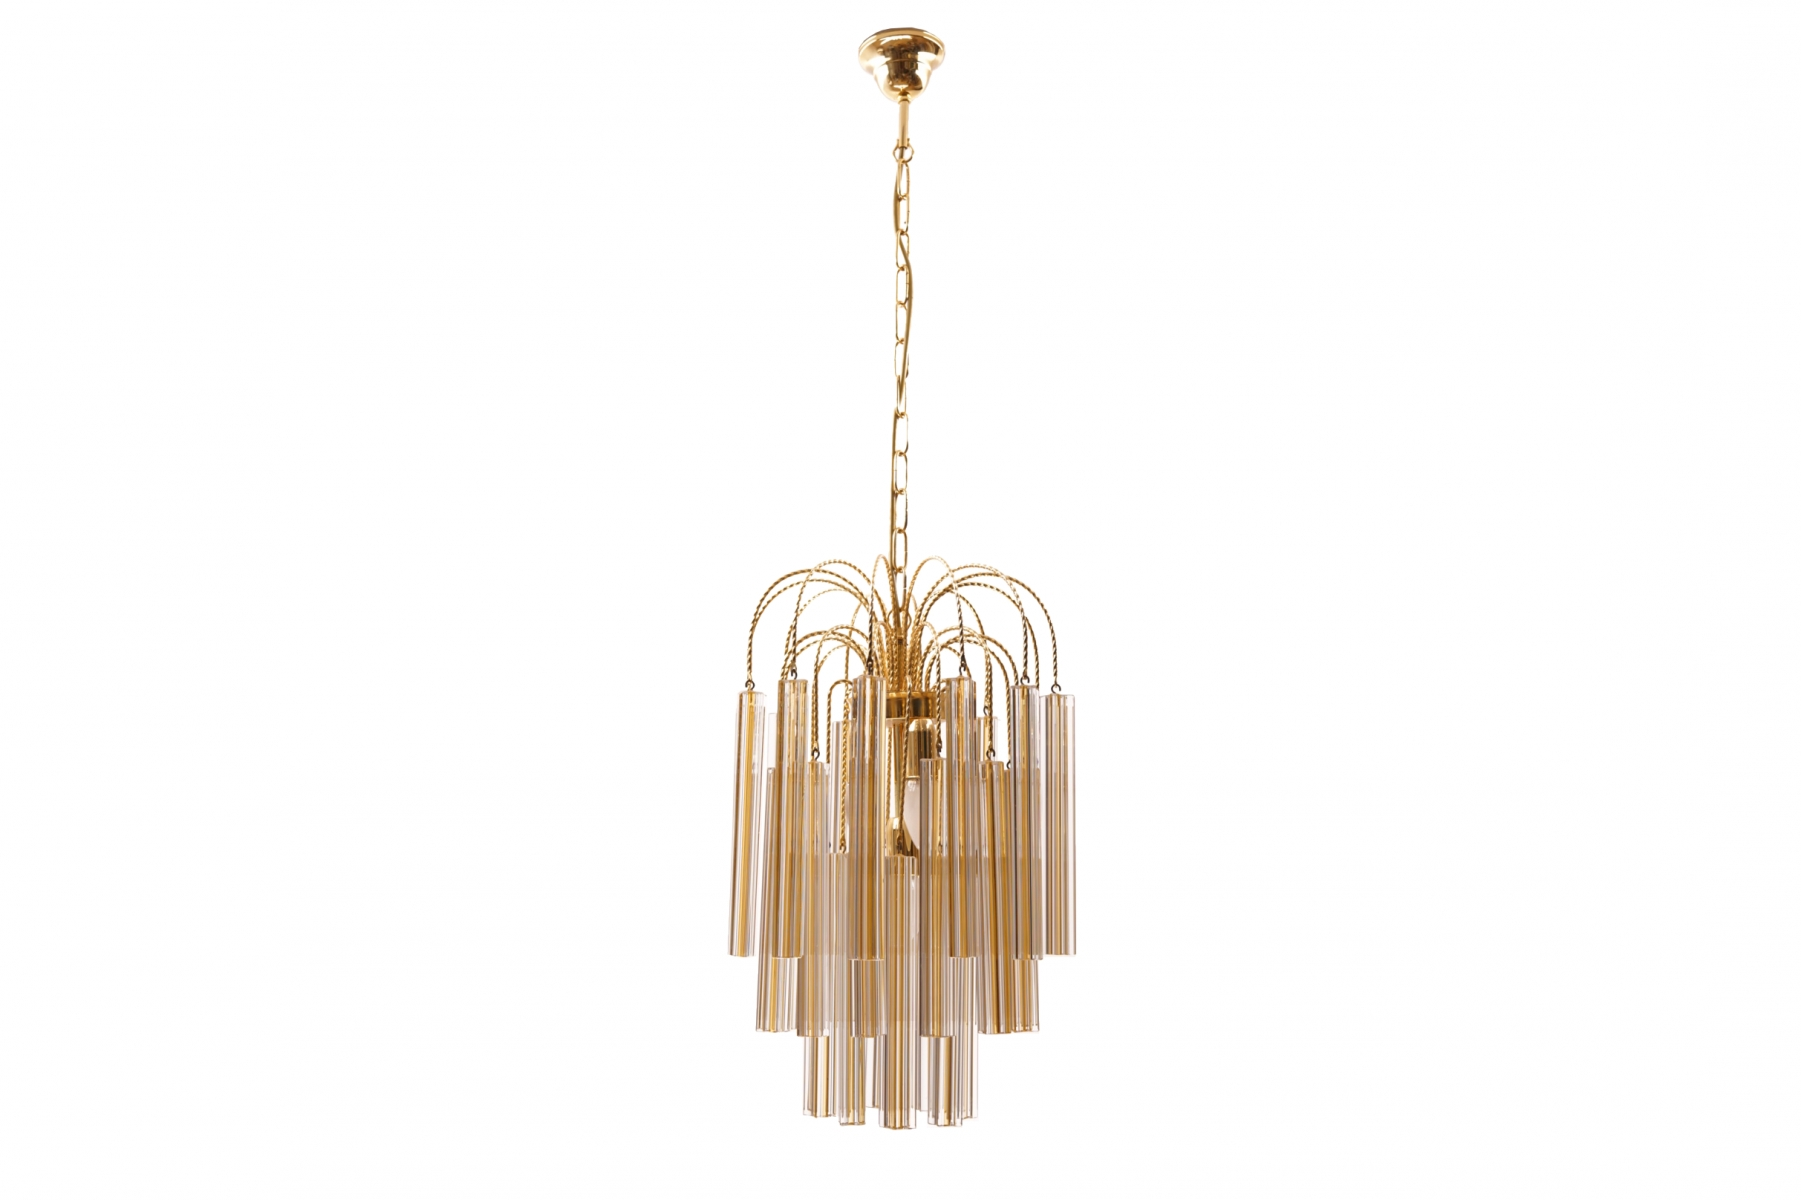 2018 Vintage Chandelier With Vintage Chandelier With Murano Glass From Venini For Sale At Pamono (View 3 of 15)